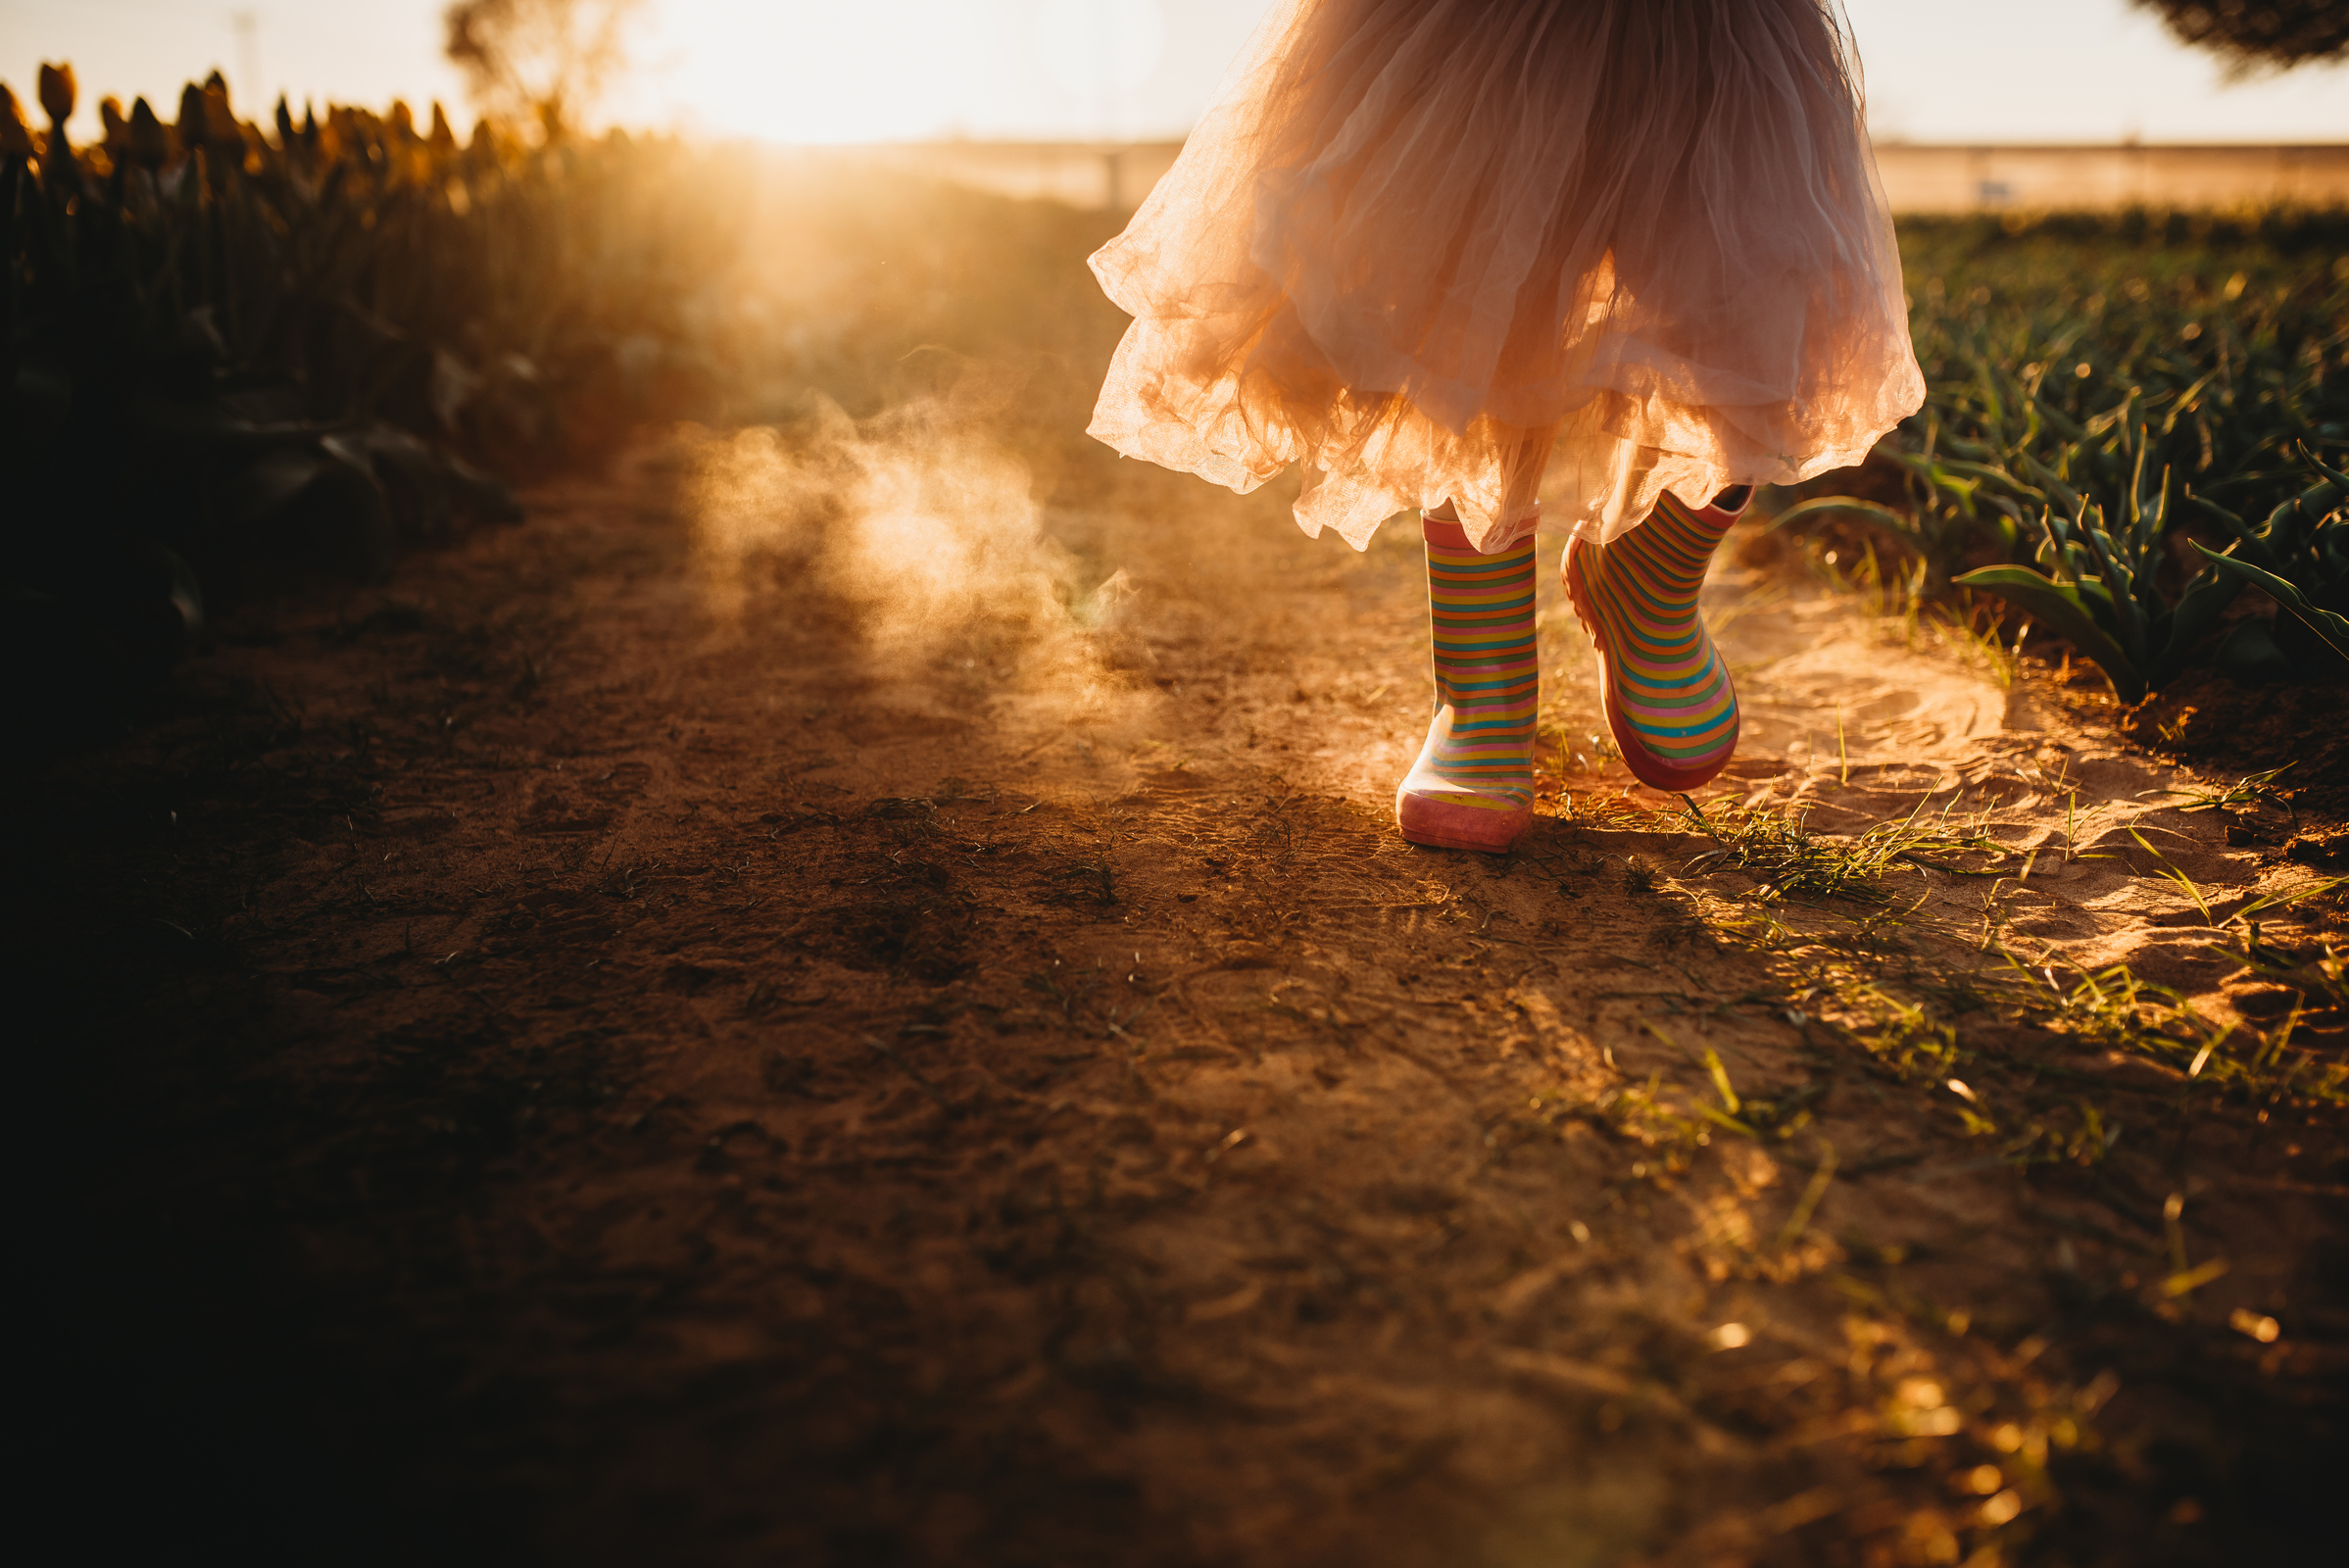 child in tulle dress and rainboots walking on dirt path at sunset amber talbert